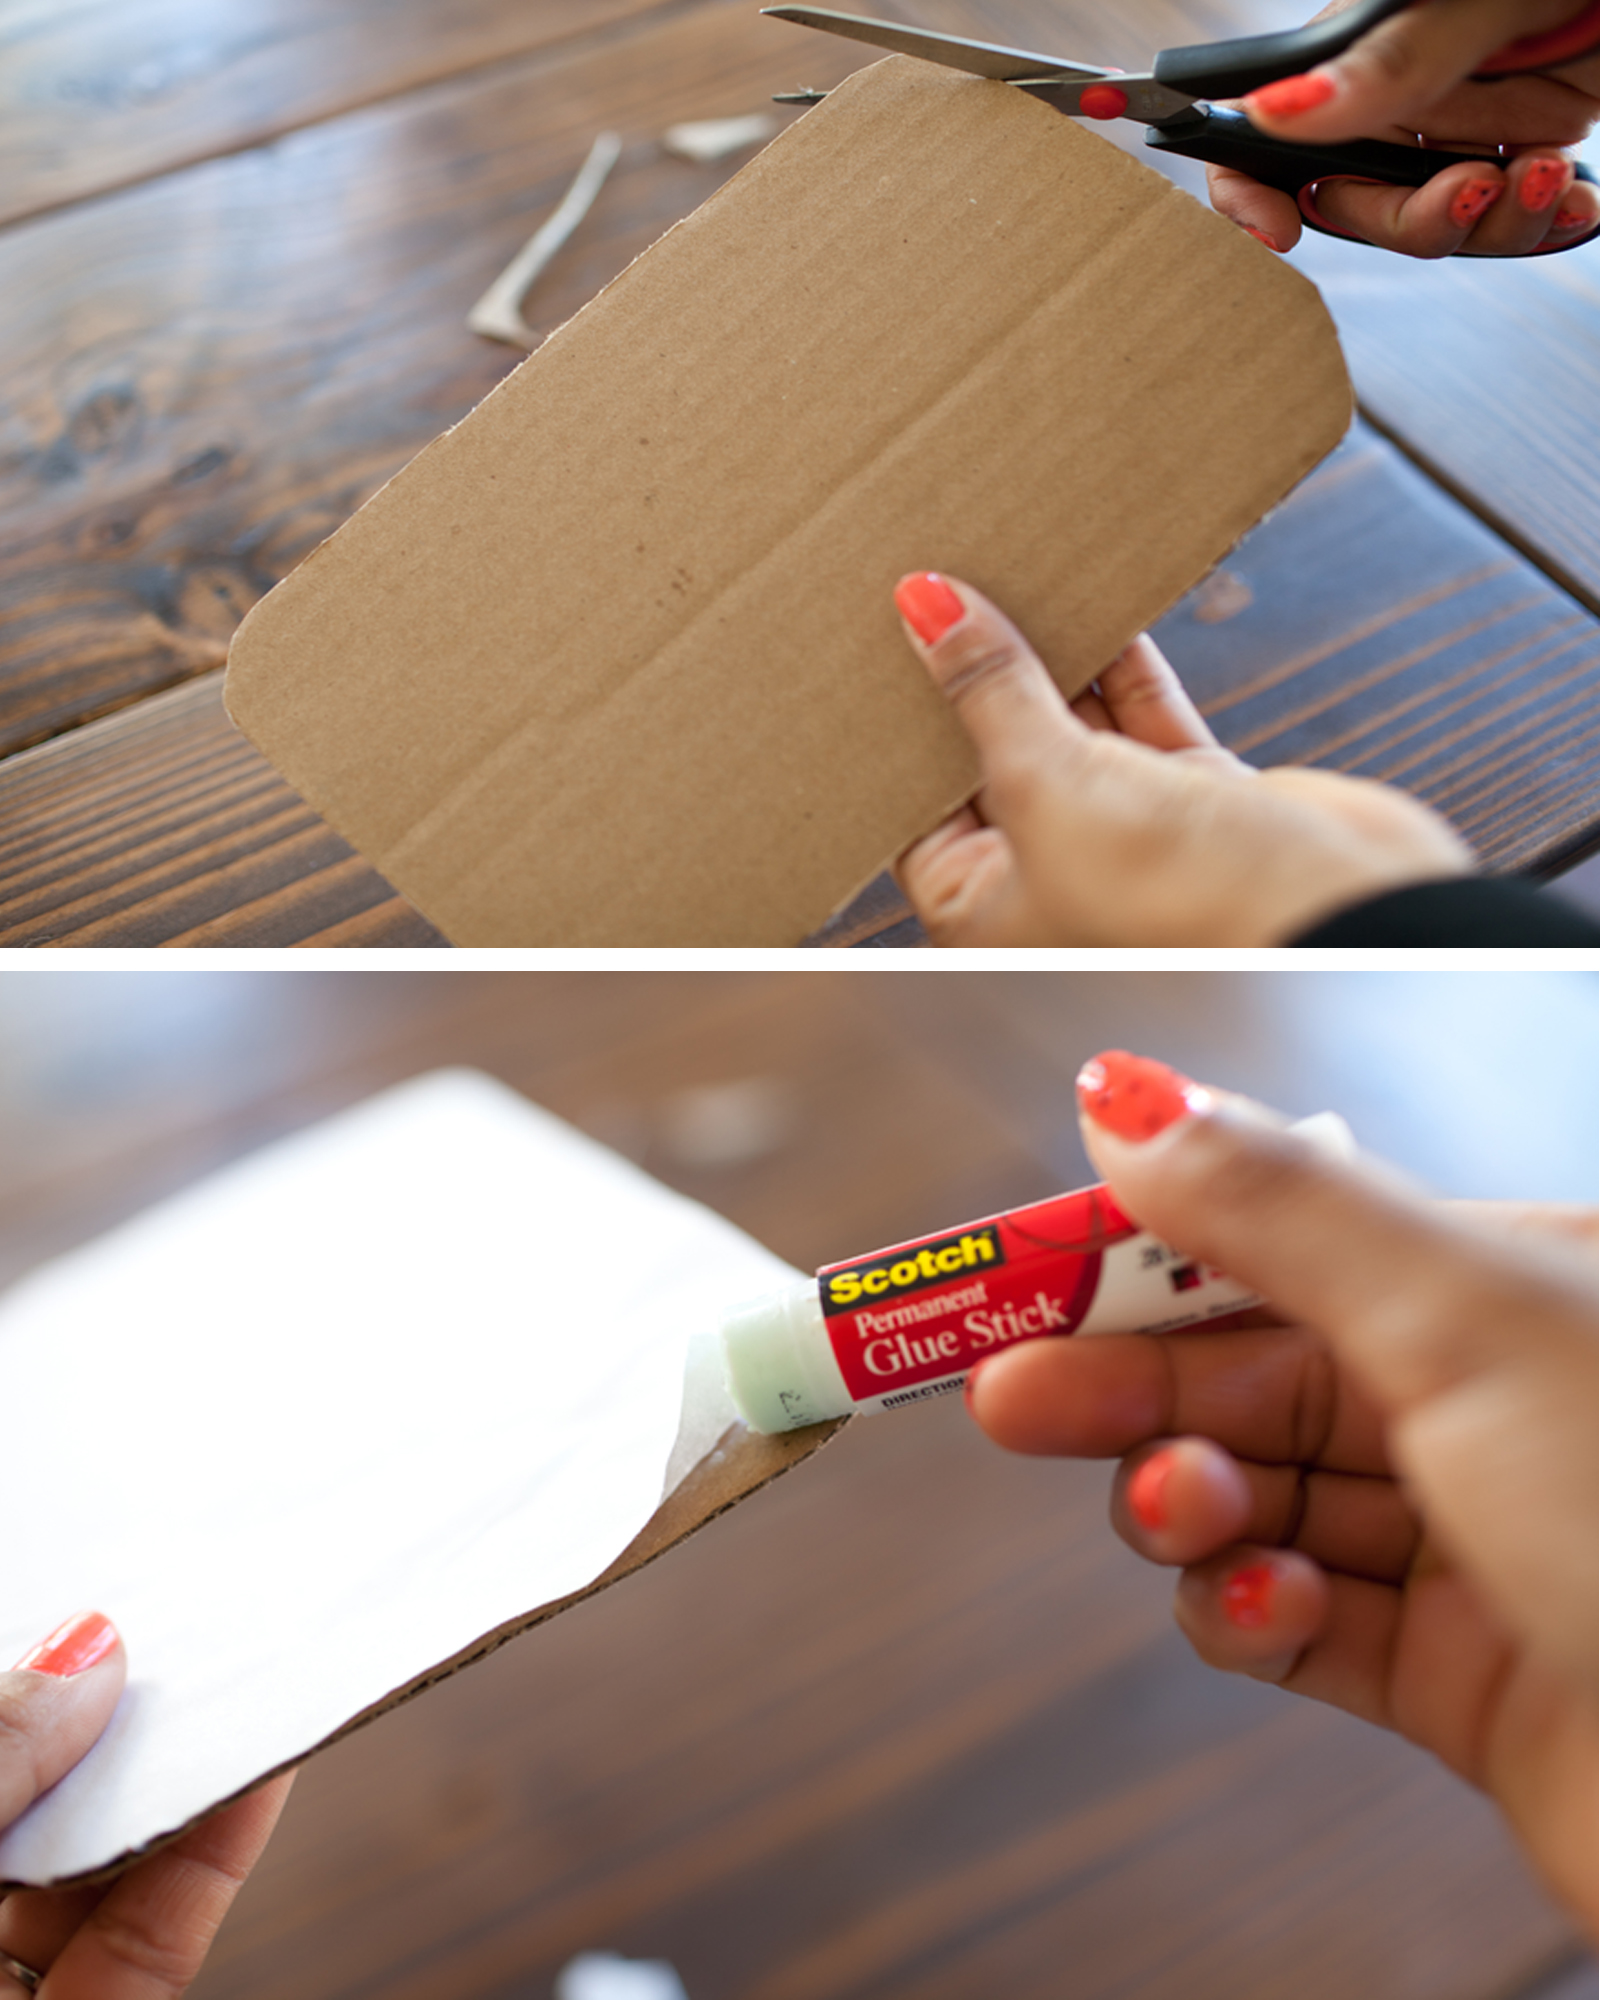 Now that your bag is complete we must work on your tea bag label!!! Take your cardboard piece and cut out a 9''x 5'' piece of cardboard. Take your white piece of paper using your glue stick, glue white paper to cardboard. Use scissors to cut white paper to fit the 9''x5'' size. Glue corners!